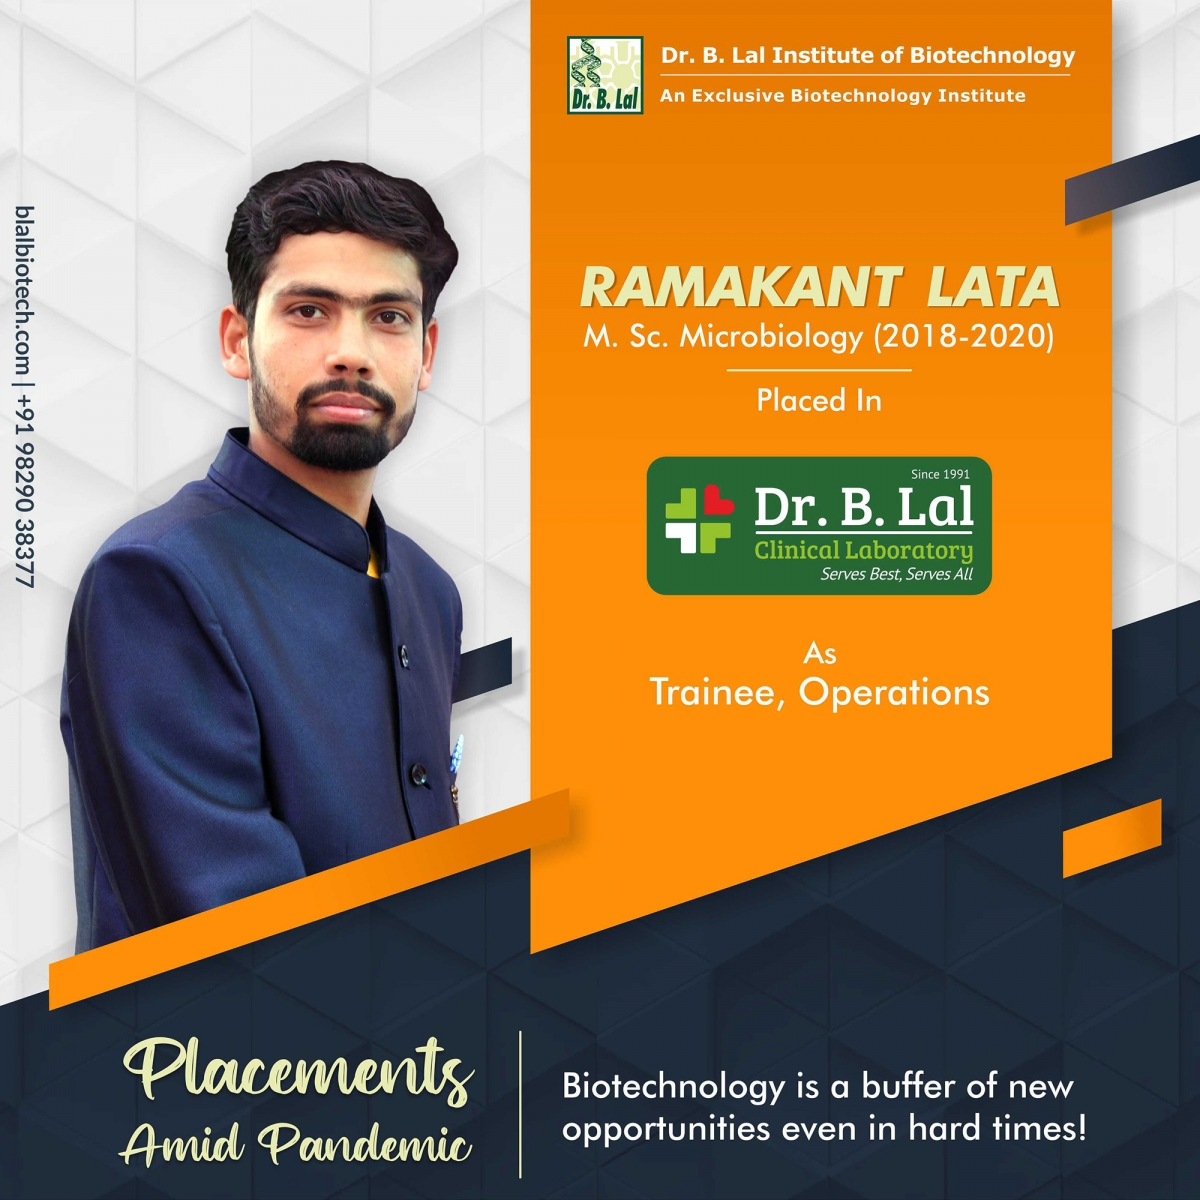 Ramakant Lata   Placements Amid Pandemic   Dr. B. Lal Institute of Biotechnology